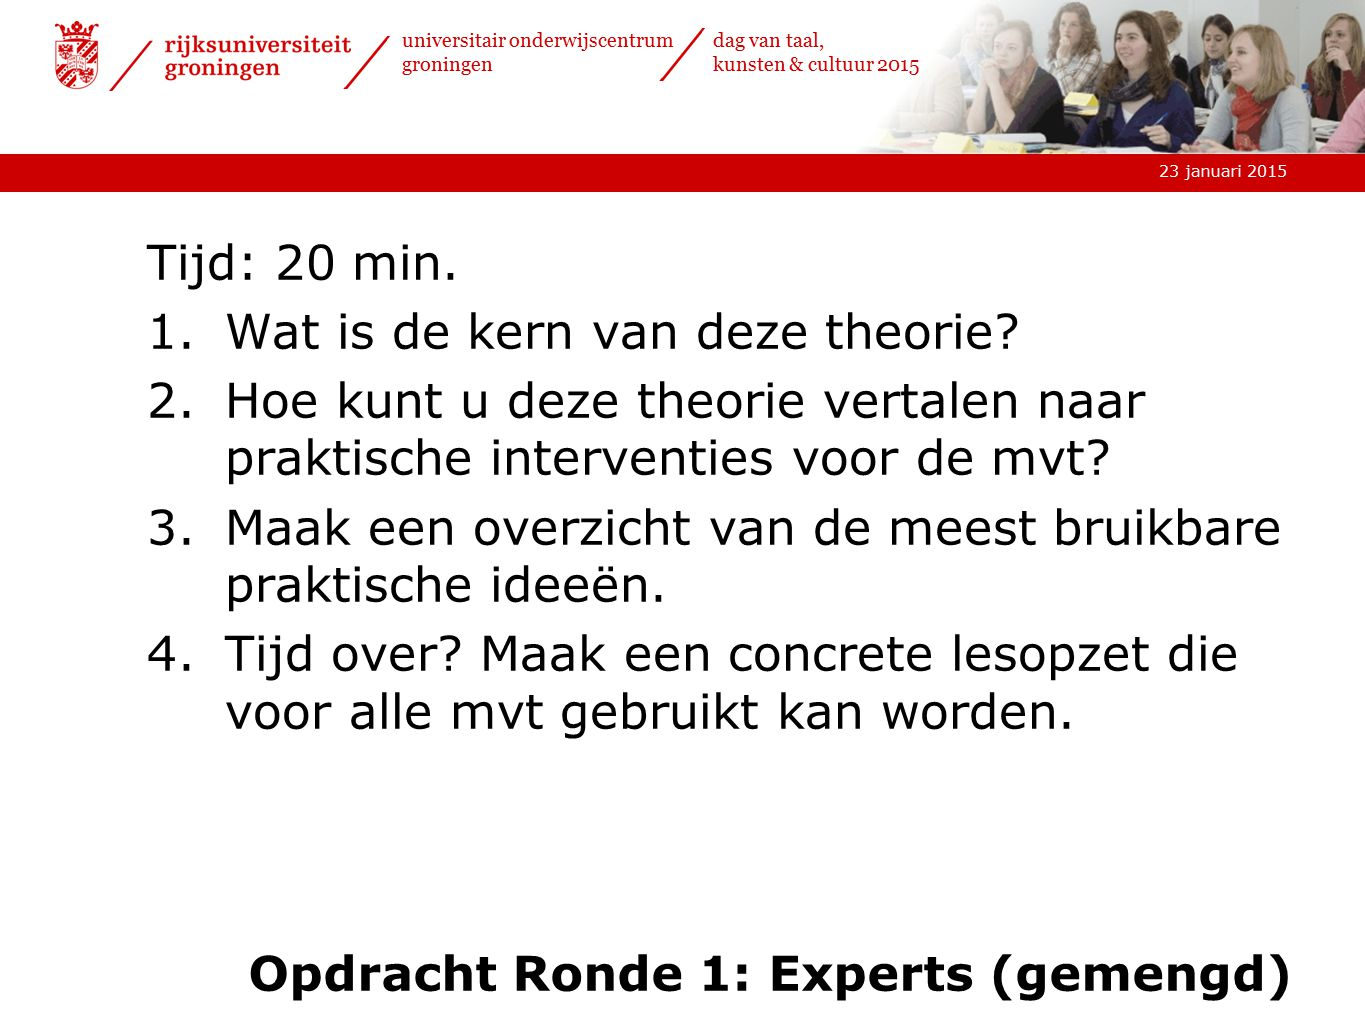 Opdracht Ronde 1: Experts (gemengd)